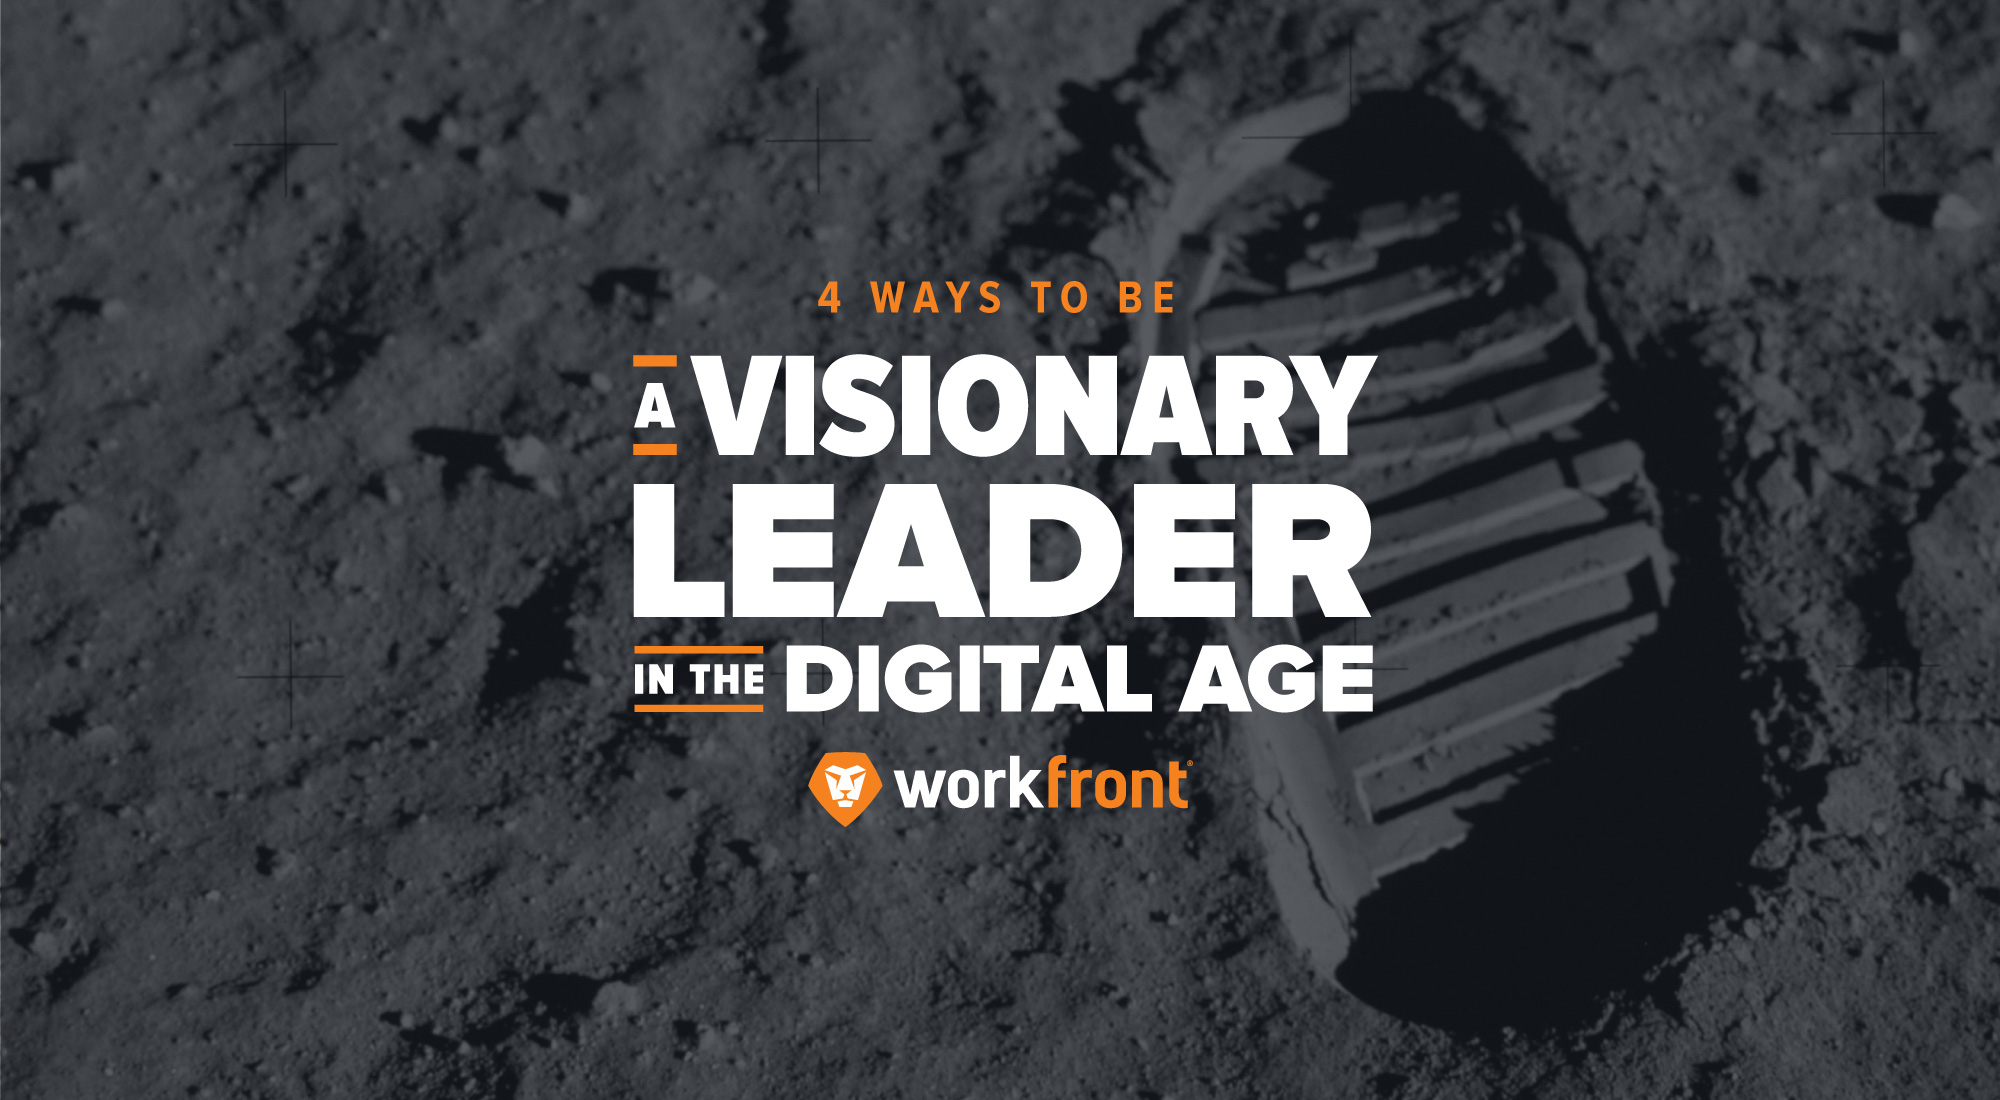 4 Ways to Be a Visionary Leader in the Digital Age